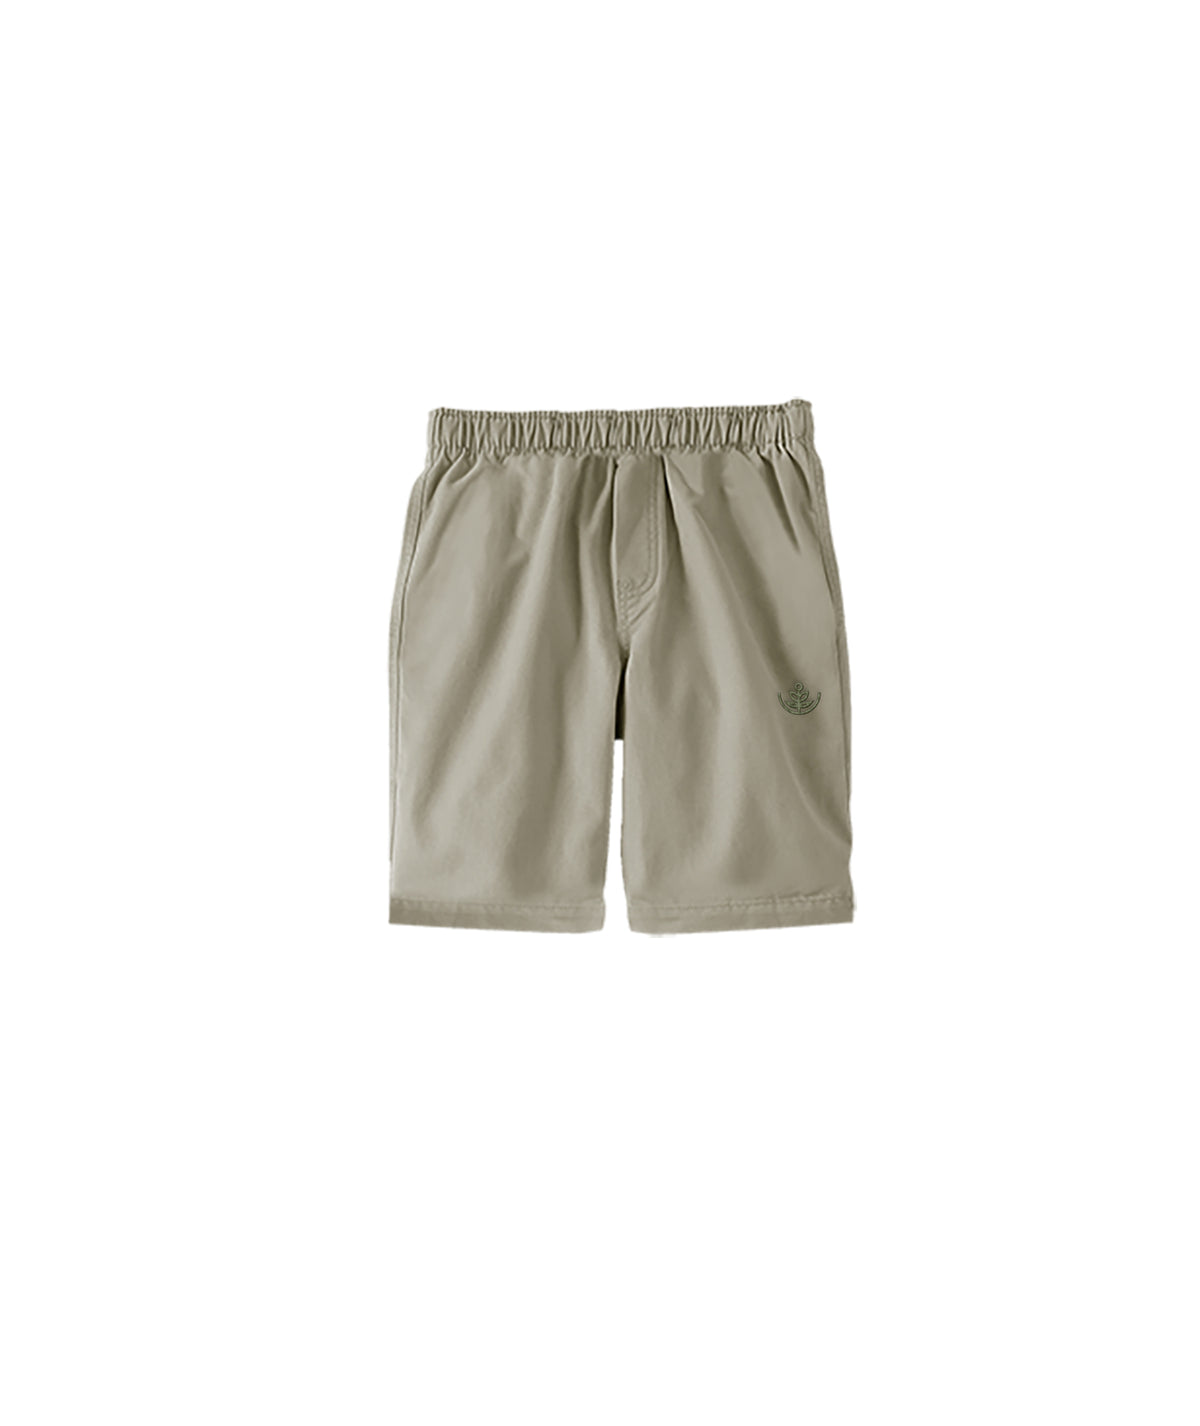 ROTHEWOOD RUGBY SHORTS, TODDLER